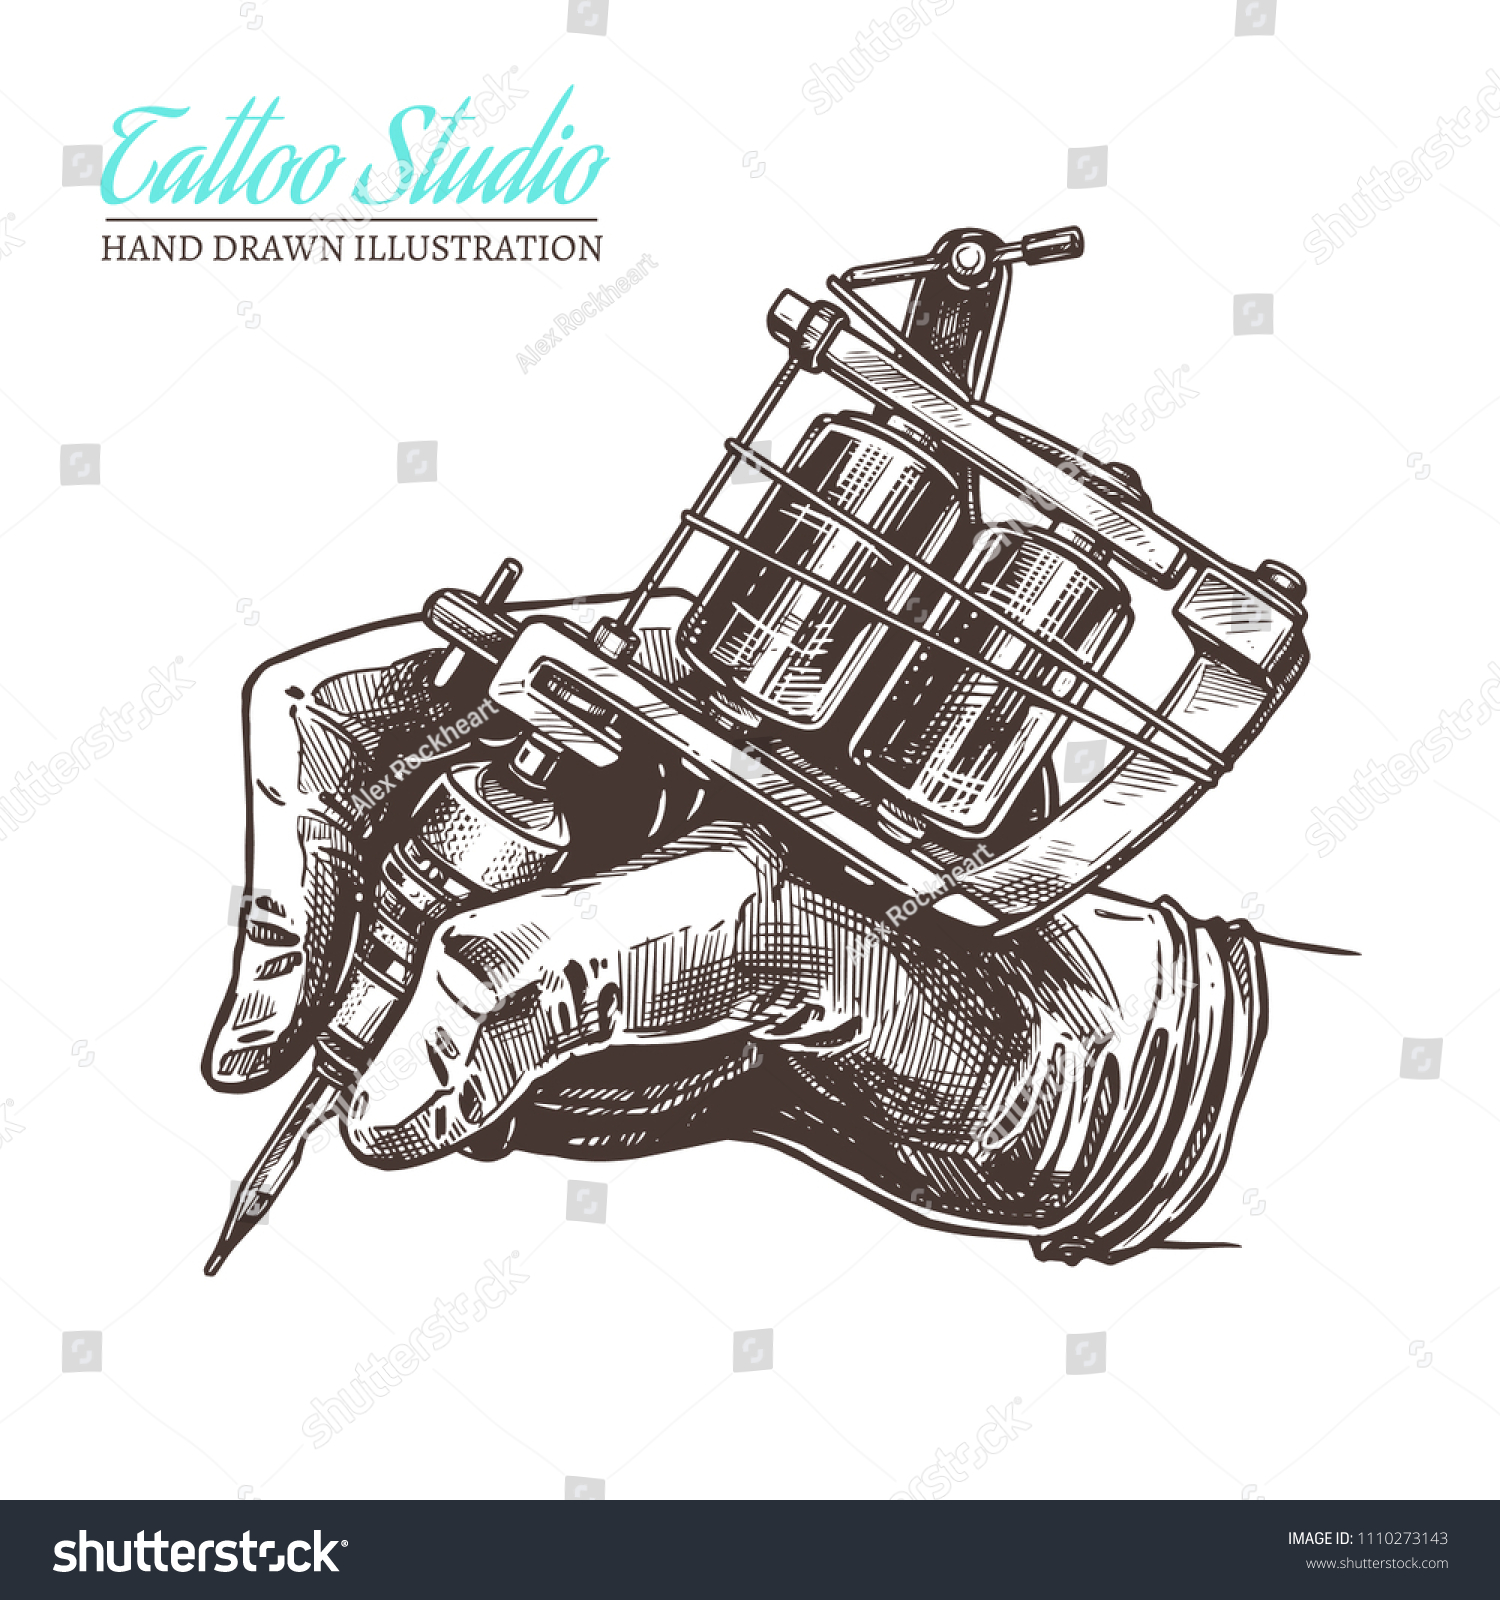 Sketch Vector Illustration Hand Tattoo Machine Stock Royalty Diagram Also As Well Of With Drawn Art For Tattooist